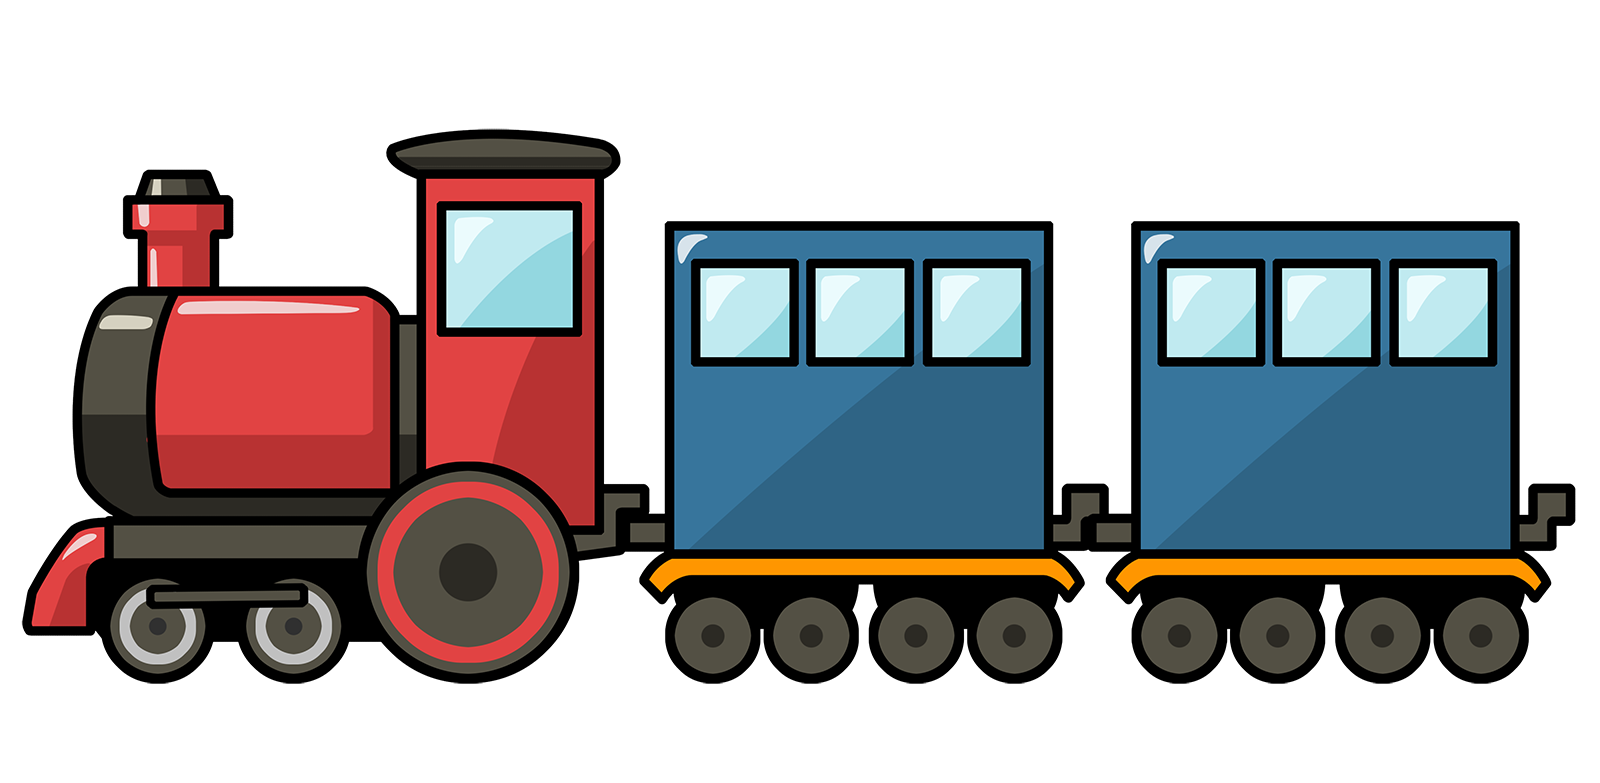 Train schedule free clipart banner royalty free download Cartoon Train | Free Cute Cartoon Train Clip Art | Cartoon Trains ... banner royalty free download